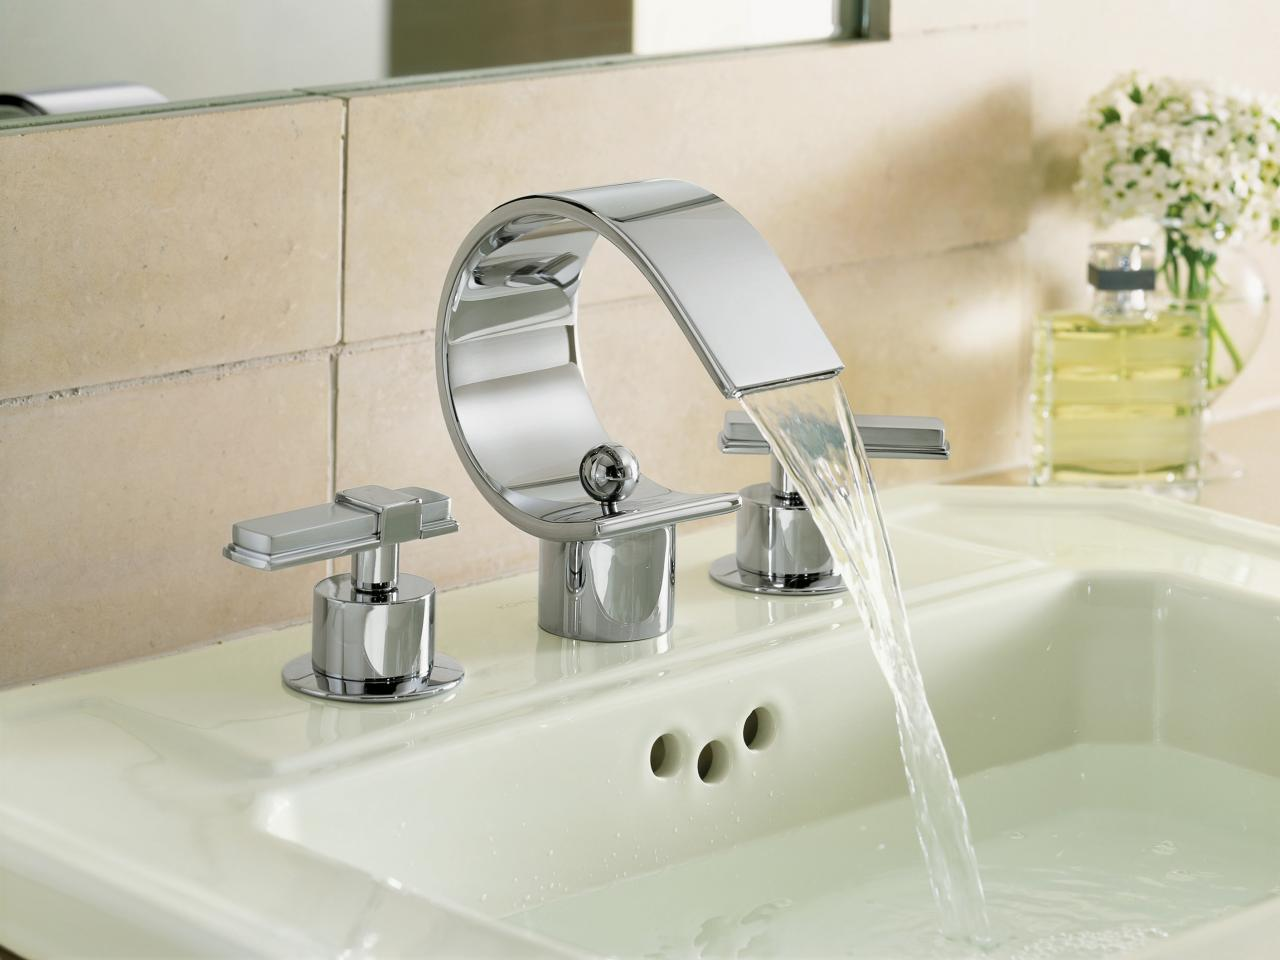 Delta Shower Valve | Brizo Bathroom Faucets | Bathroom Faucets